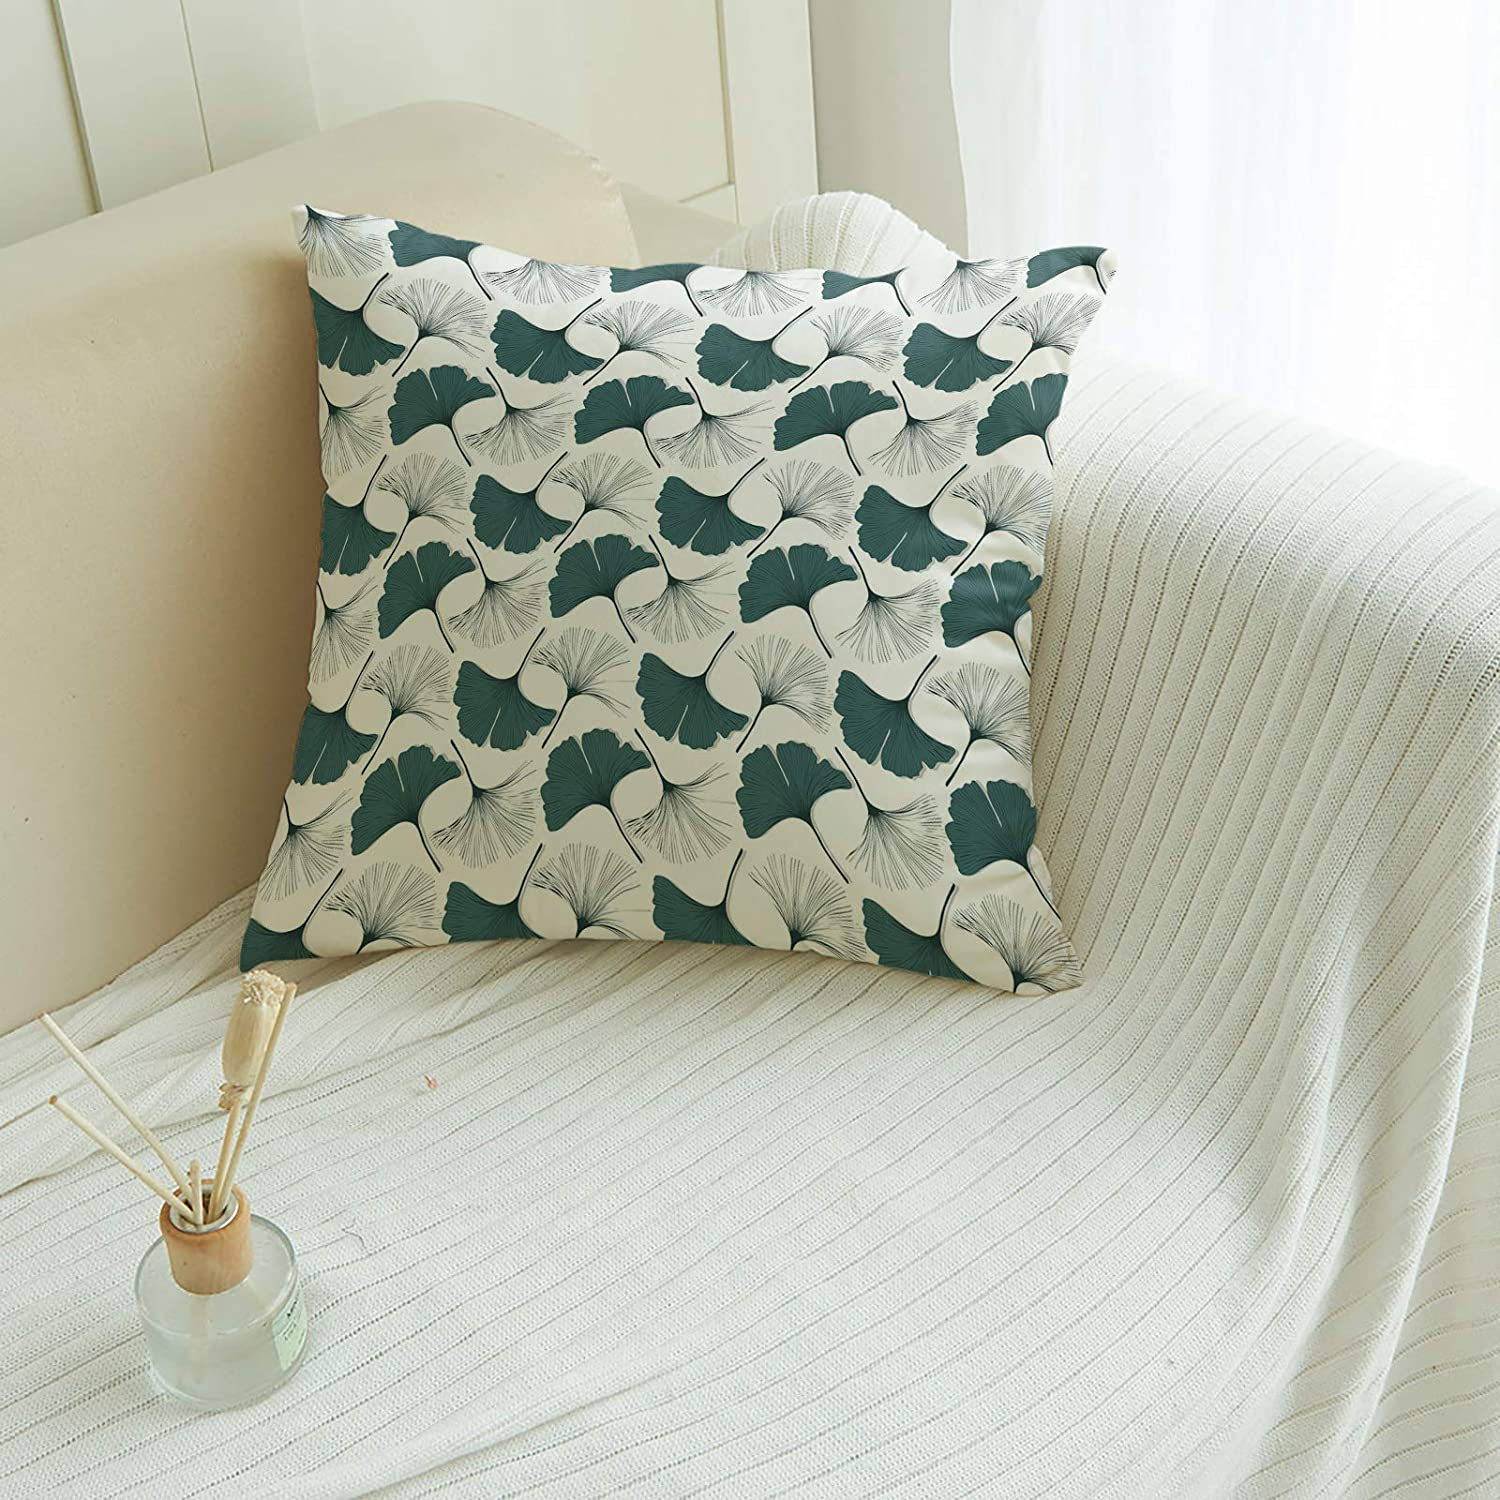 Throw Pillow Cover Spring Beautiful Ginkgo Textur Leaf Art Sale Green Be super welcome